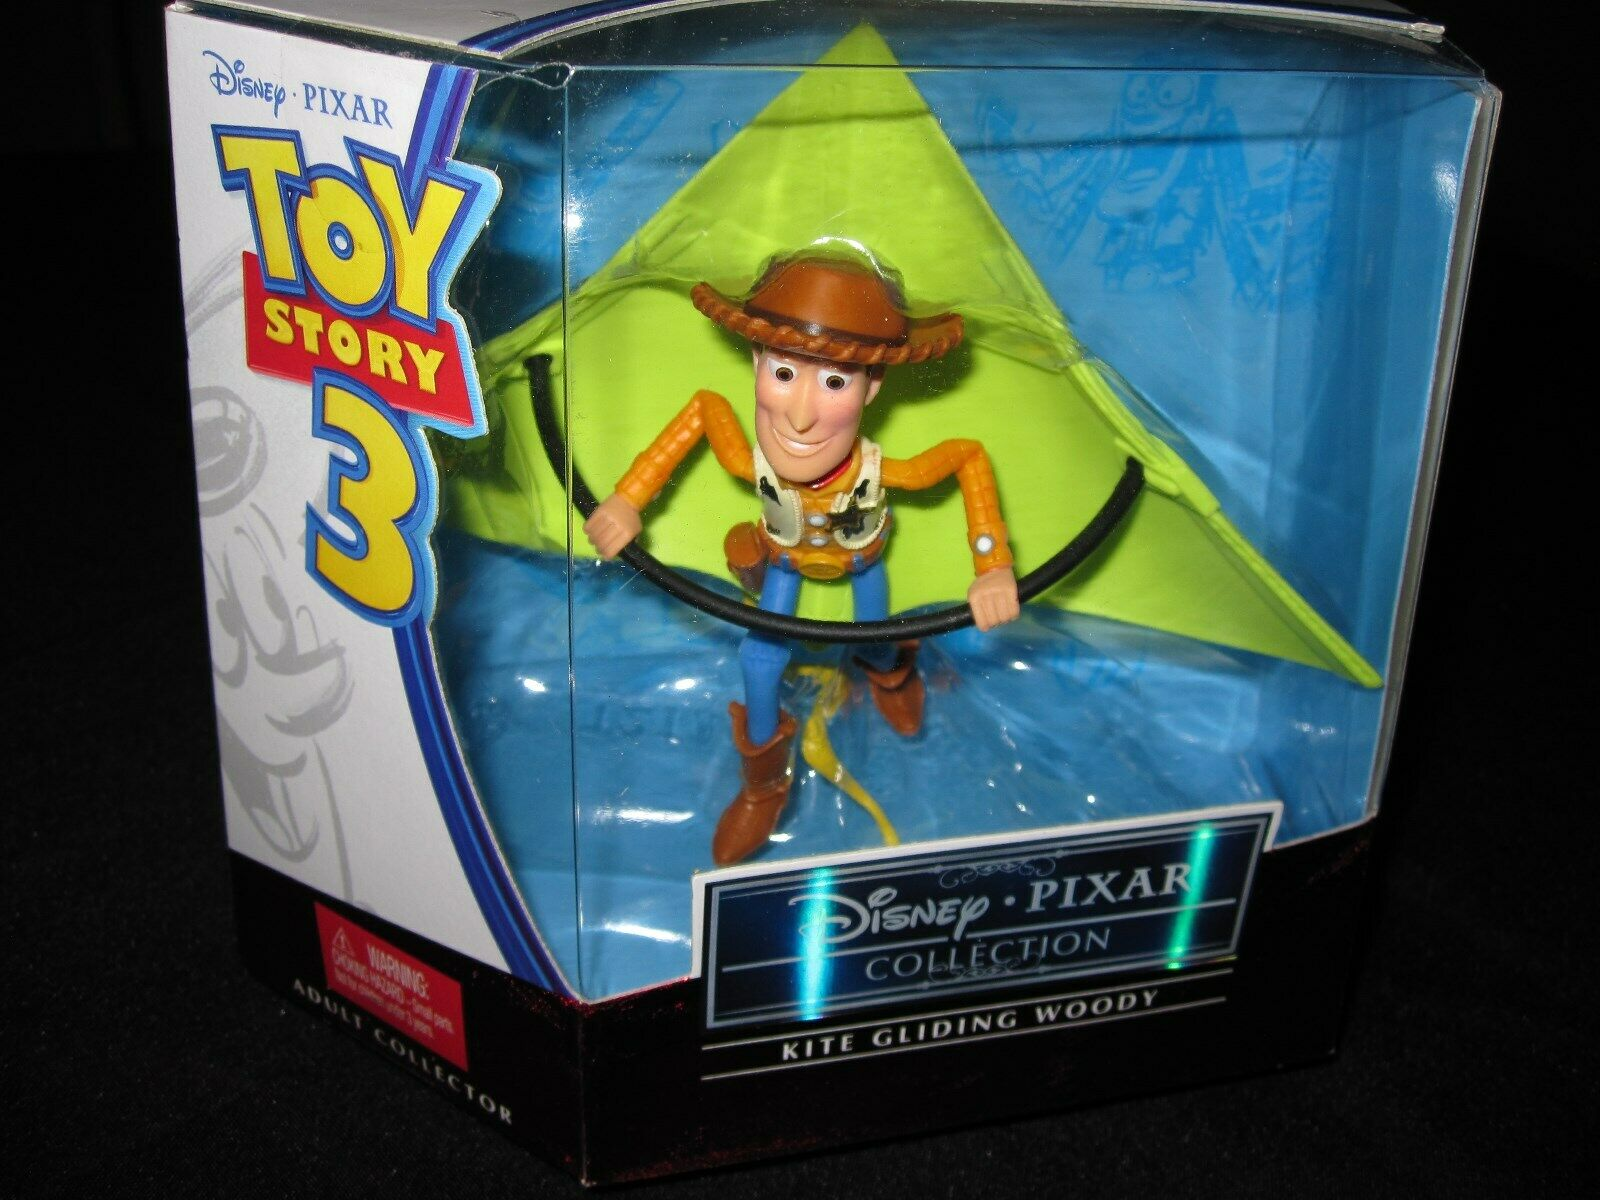 Disney Pixar Toy Story 3 Kite Gliding Woody Adult Collection